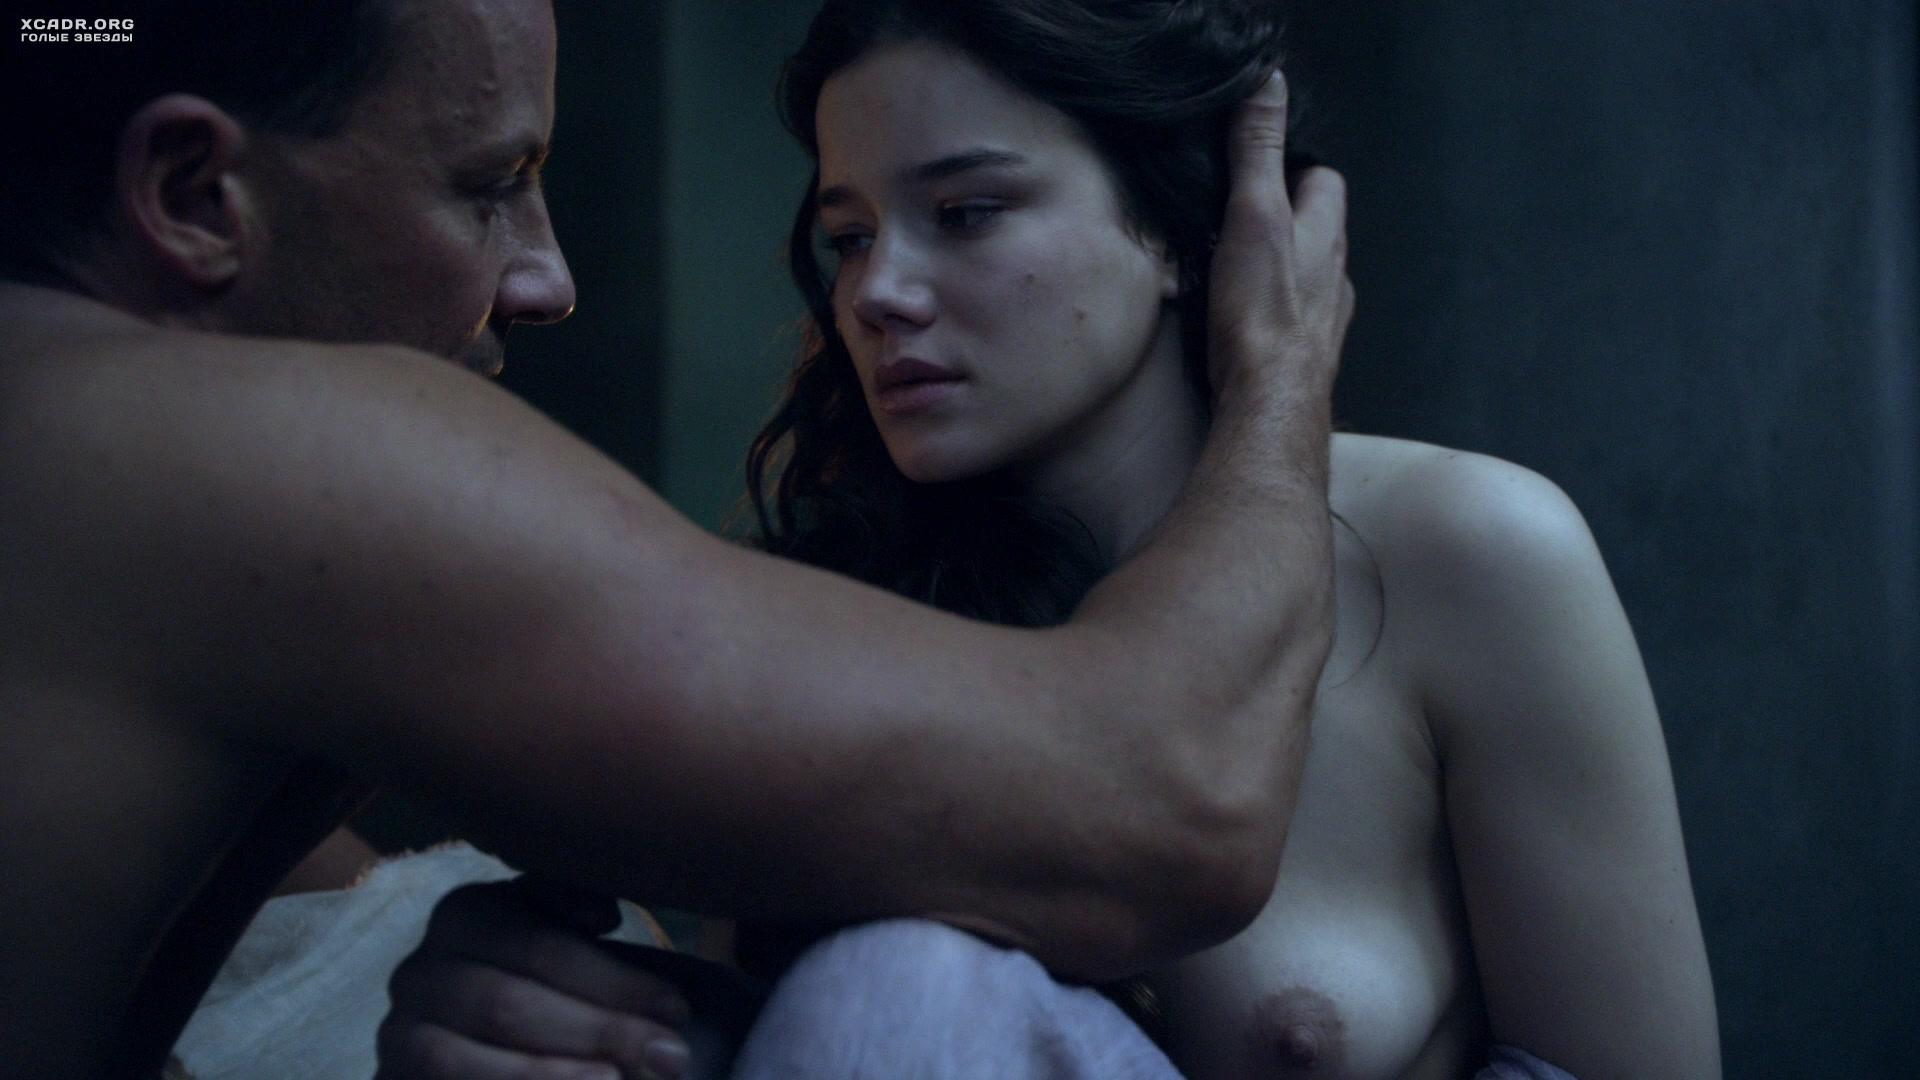 The making of outlander's sex scenes